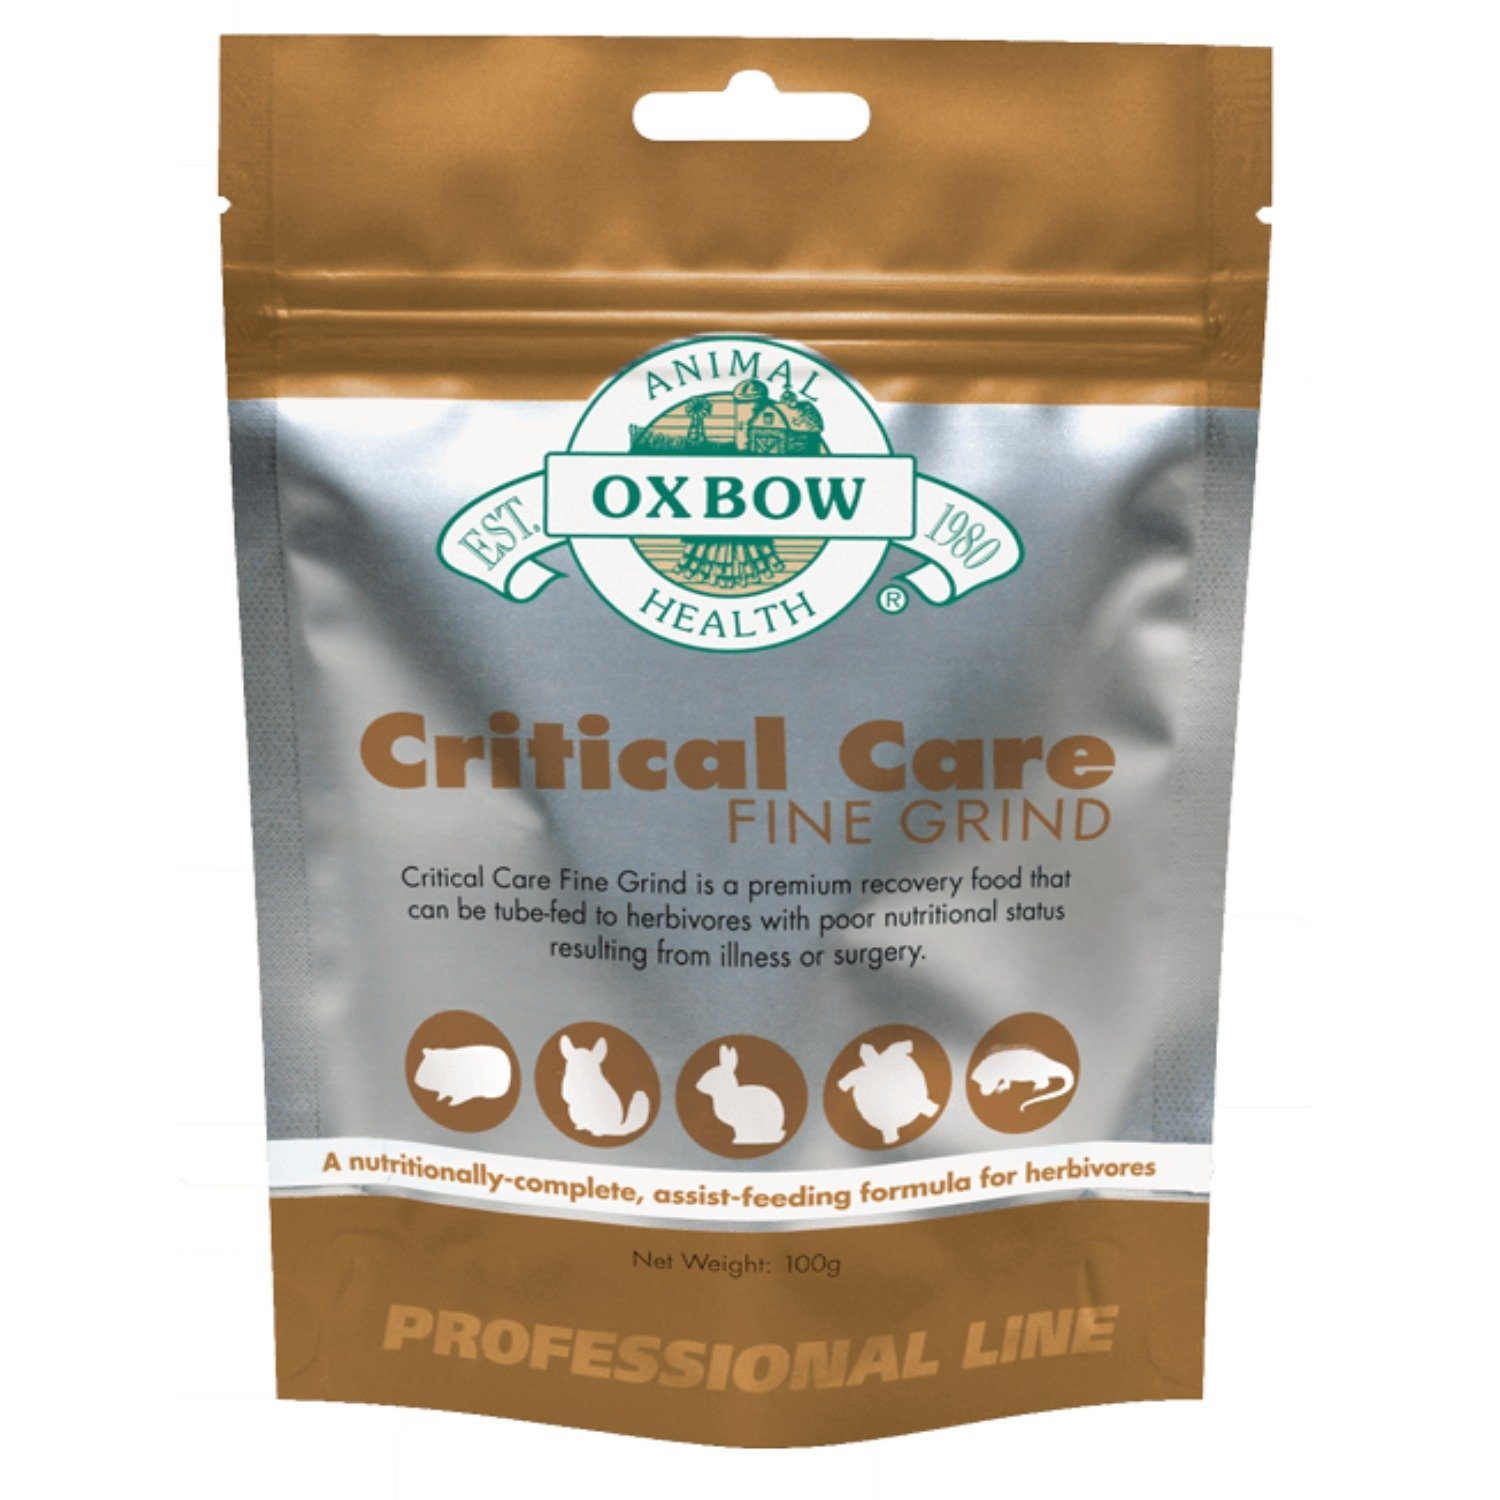 Oxbow Critical Care Fine Grind Pet Supplement, 100gm by Oxbow